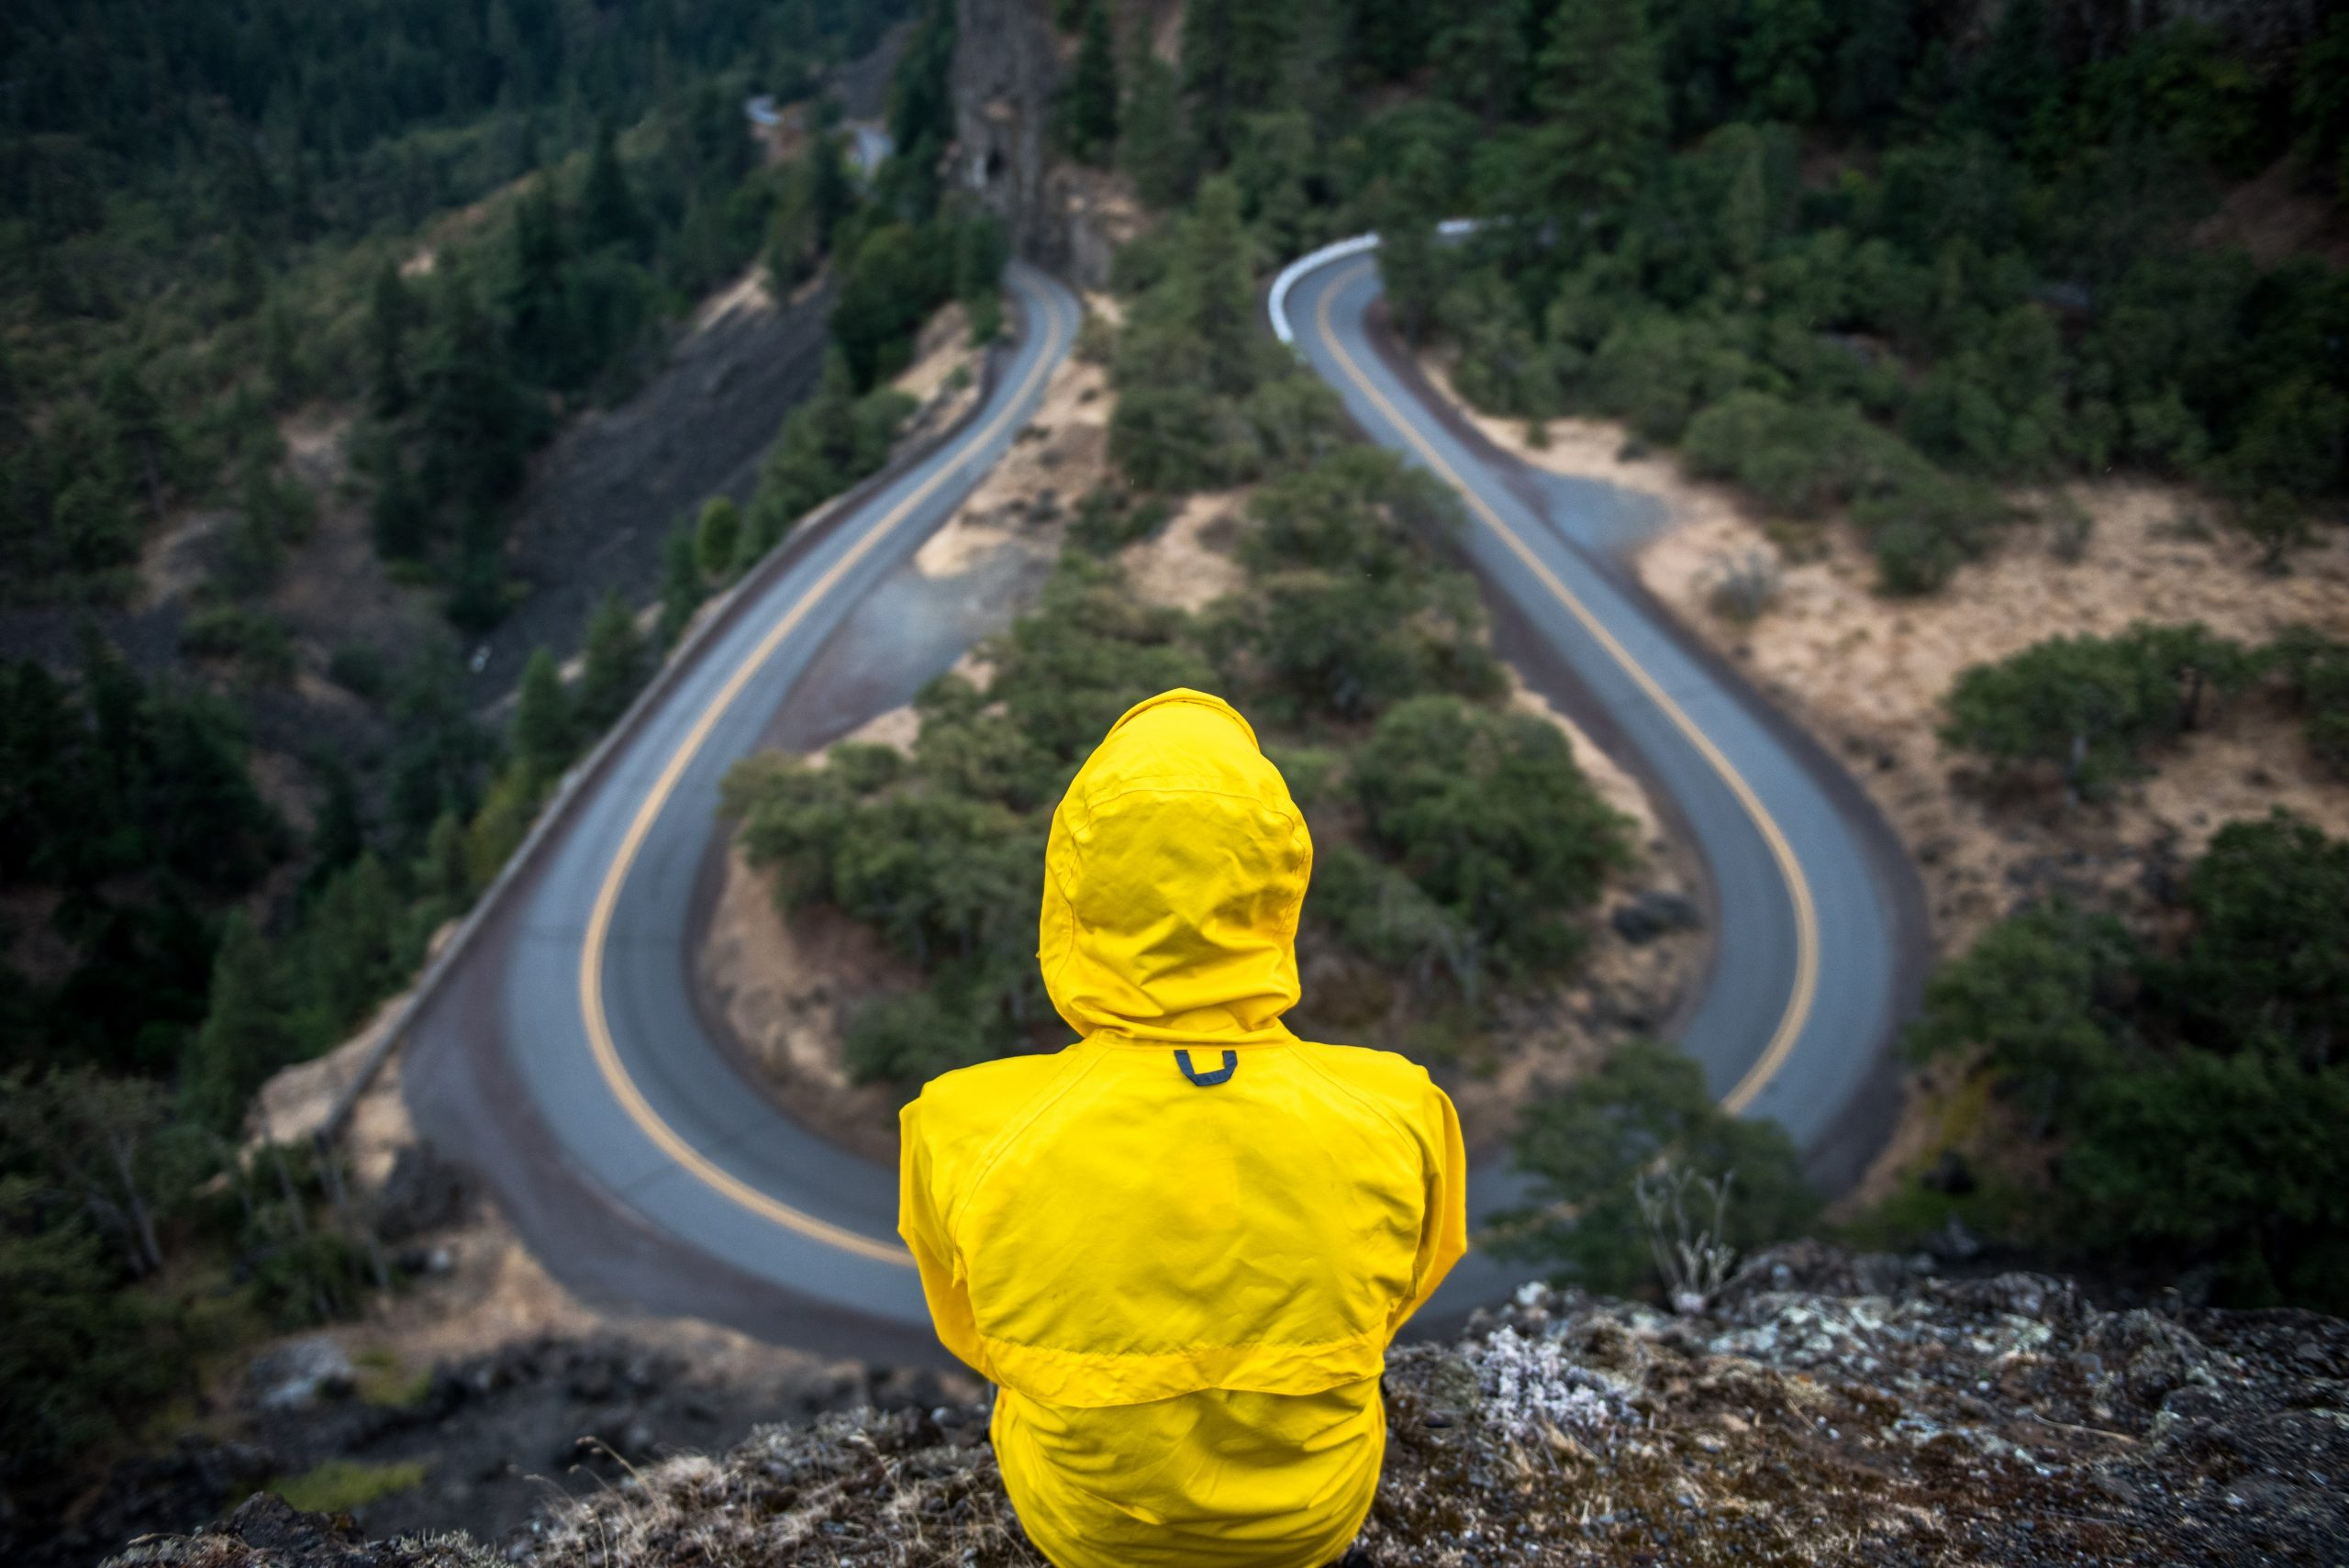 Person in yellow jacket sitting on a cliff overlooking a road